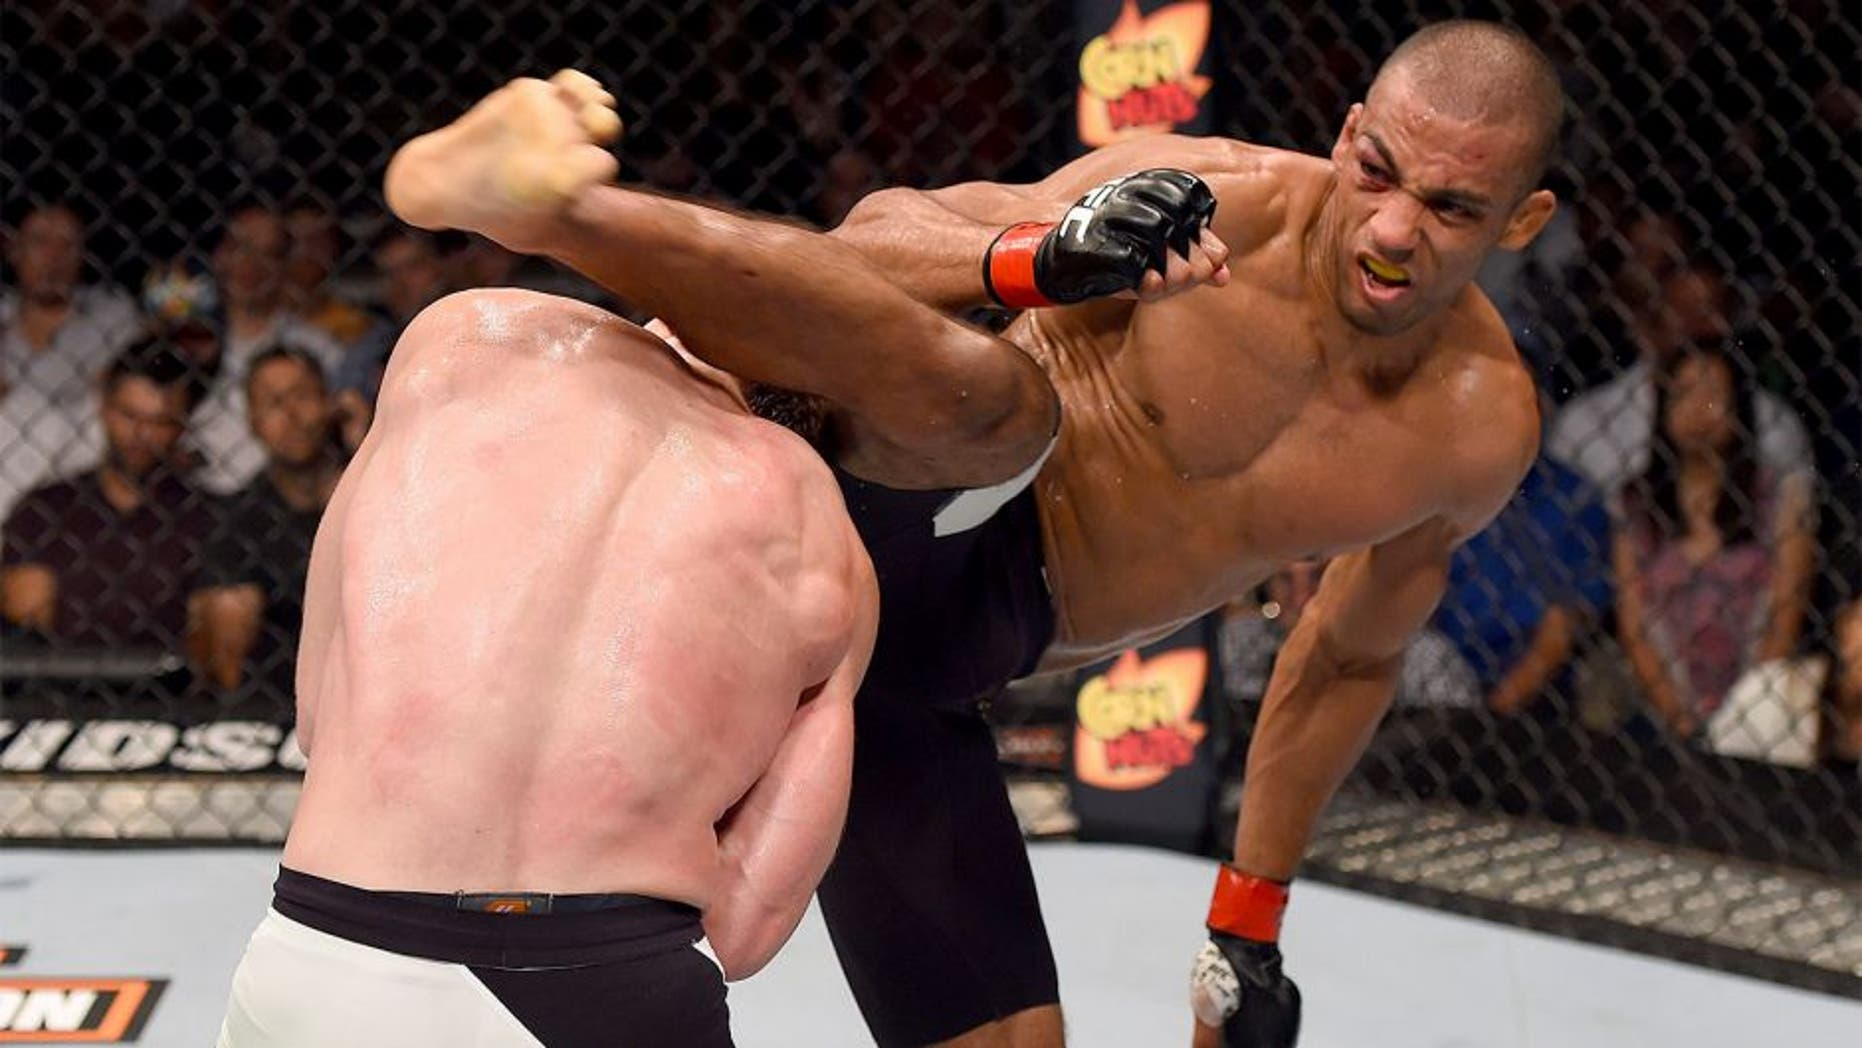 CHICAGO, IL - JULY 25: (R-L) Edson Barboza of Brazil kicks Paul Felder in their lightweight bout during the UFC event at the United Center on July 25, 2015 in Chicago, Illinois. (Photo by Jeff Bottari/Zuffa LLC/Zuffa LLC via Getty Images)